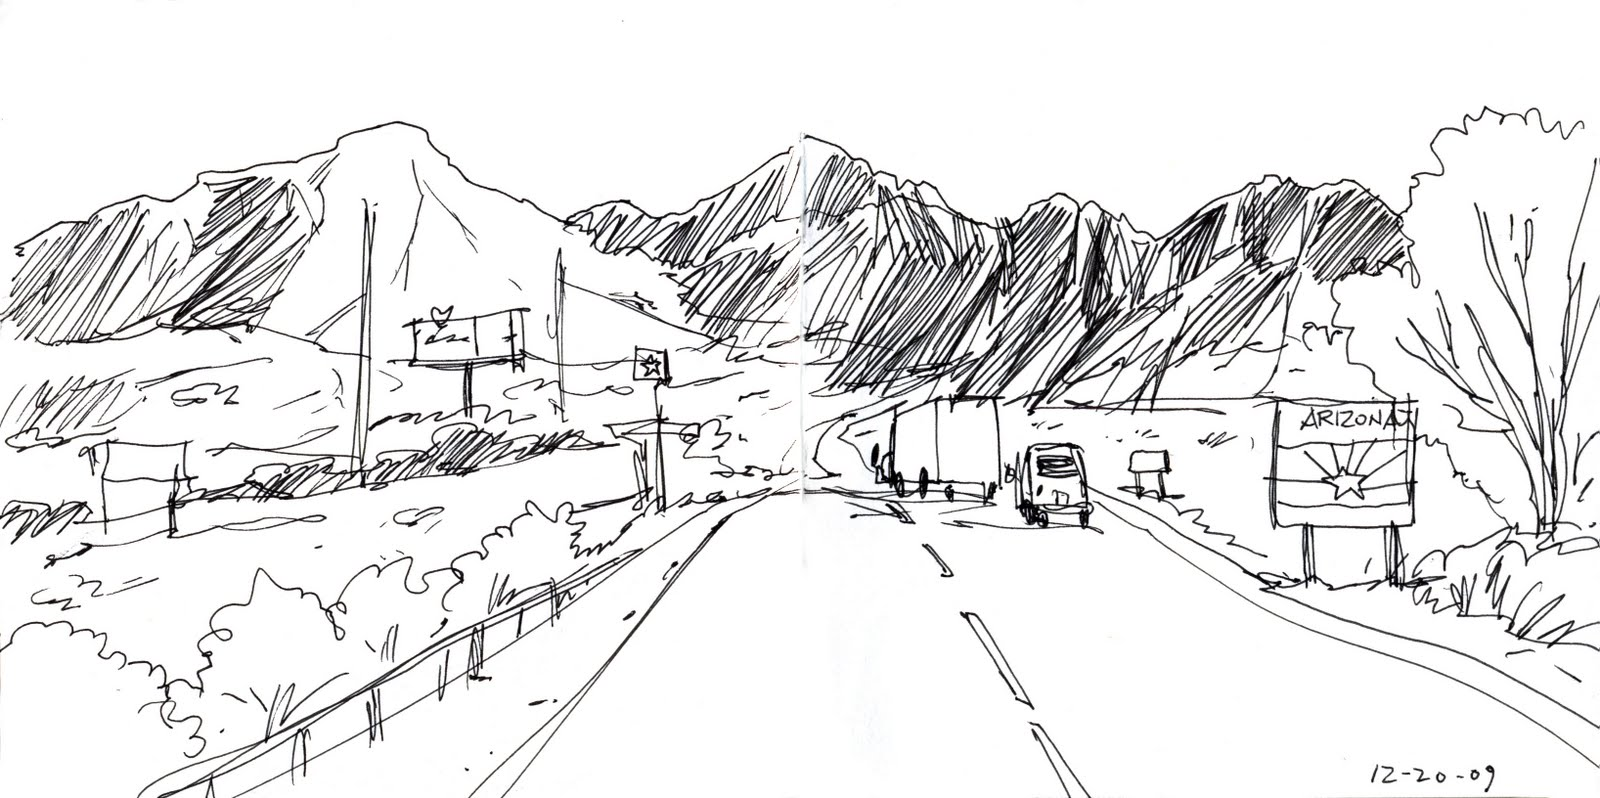 Works in Progress...On Location: Drawing on Location in